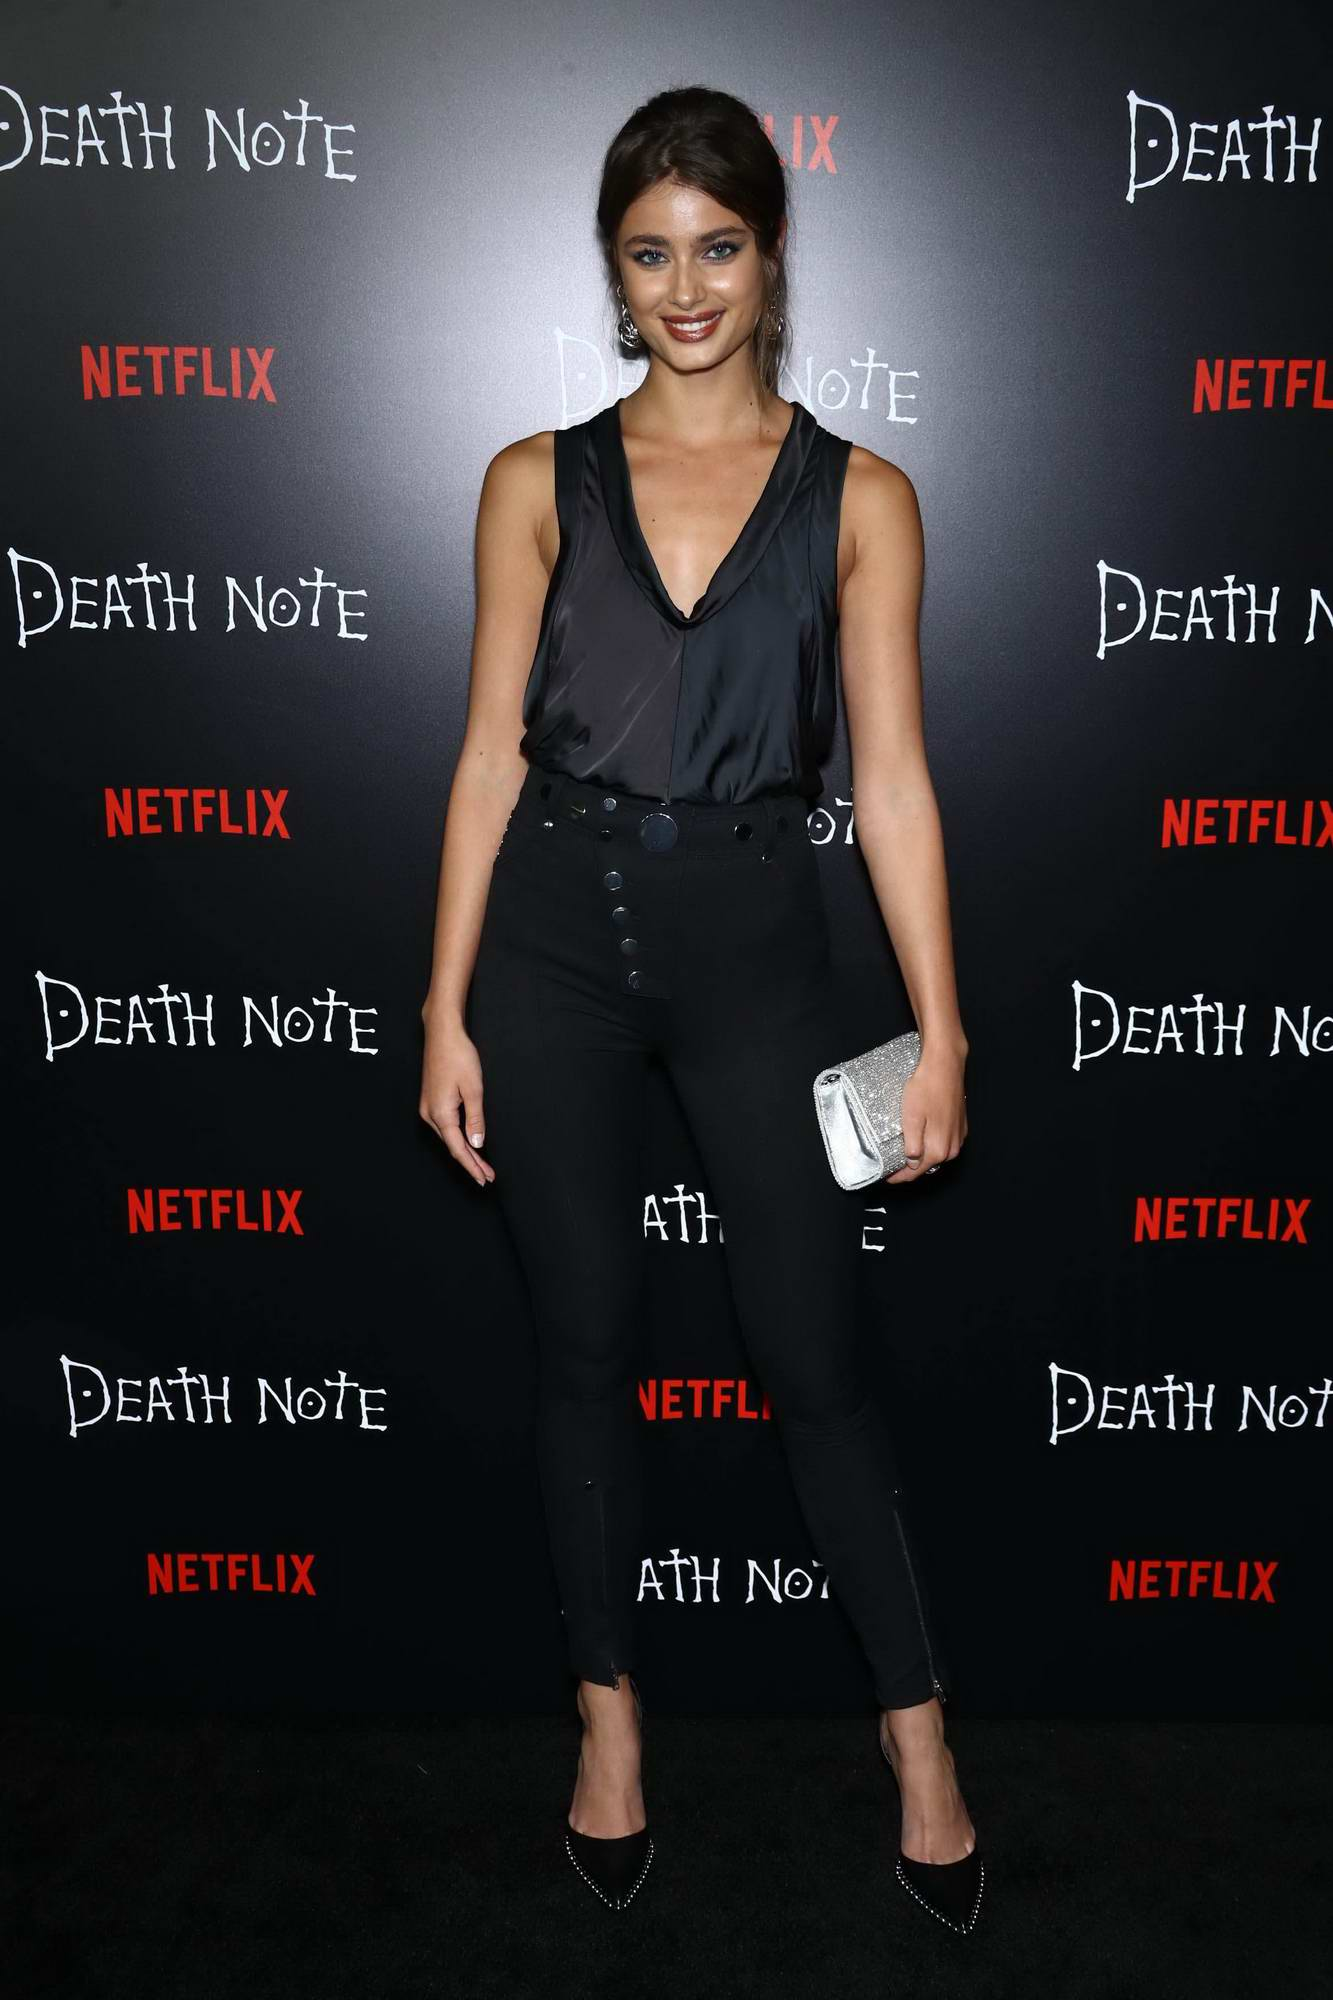 Taylor Hill attends the Death Note Premiere in New York